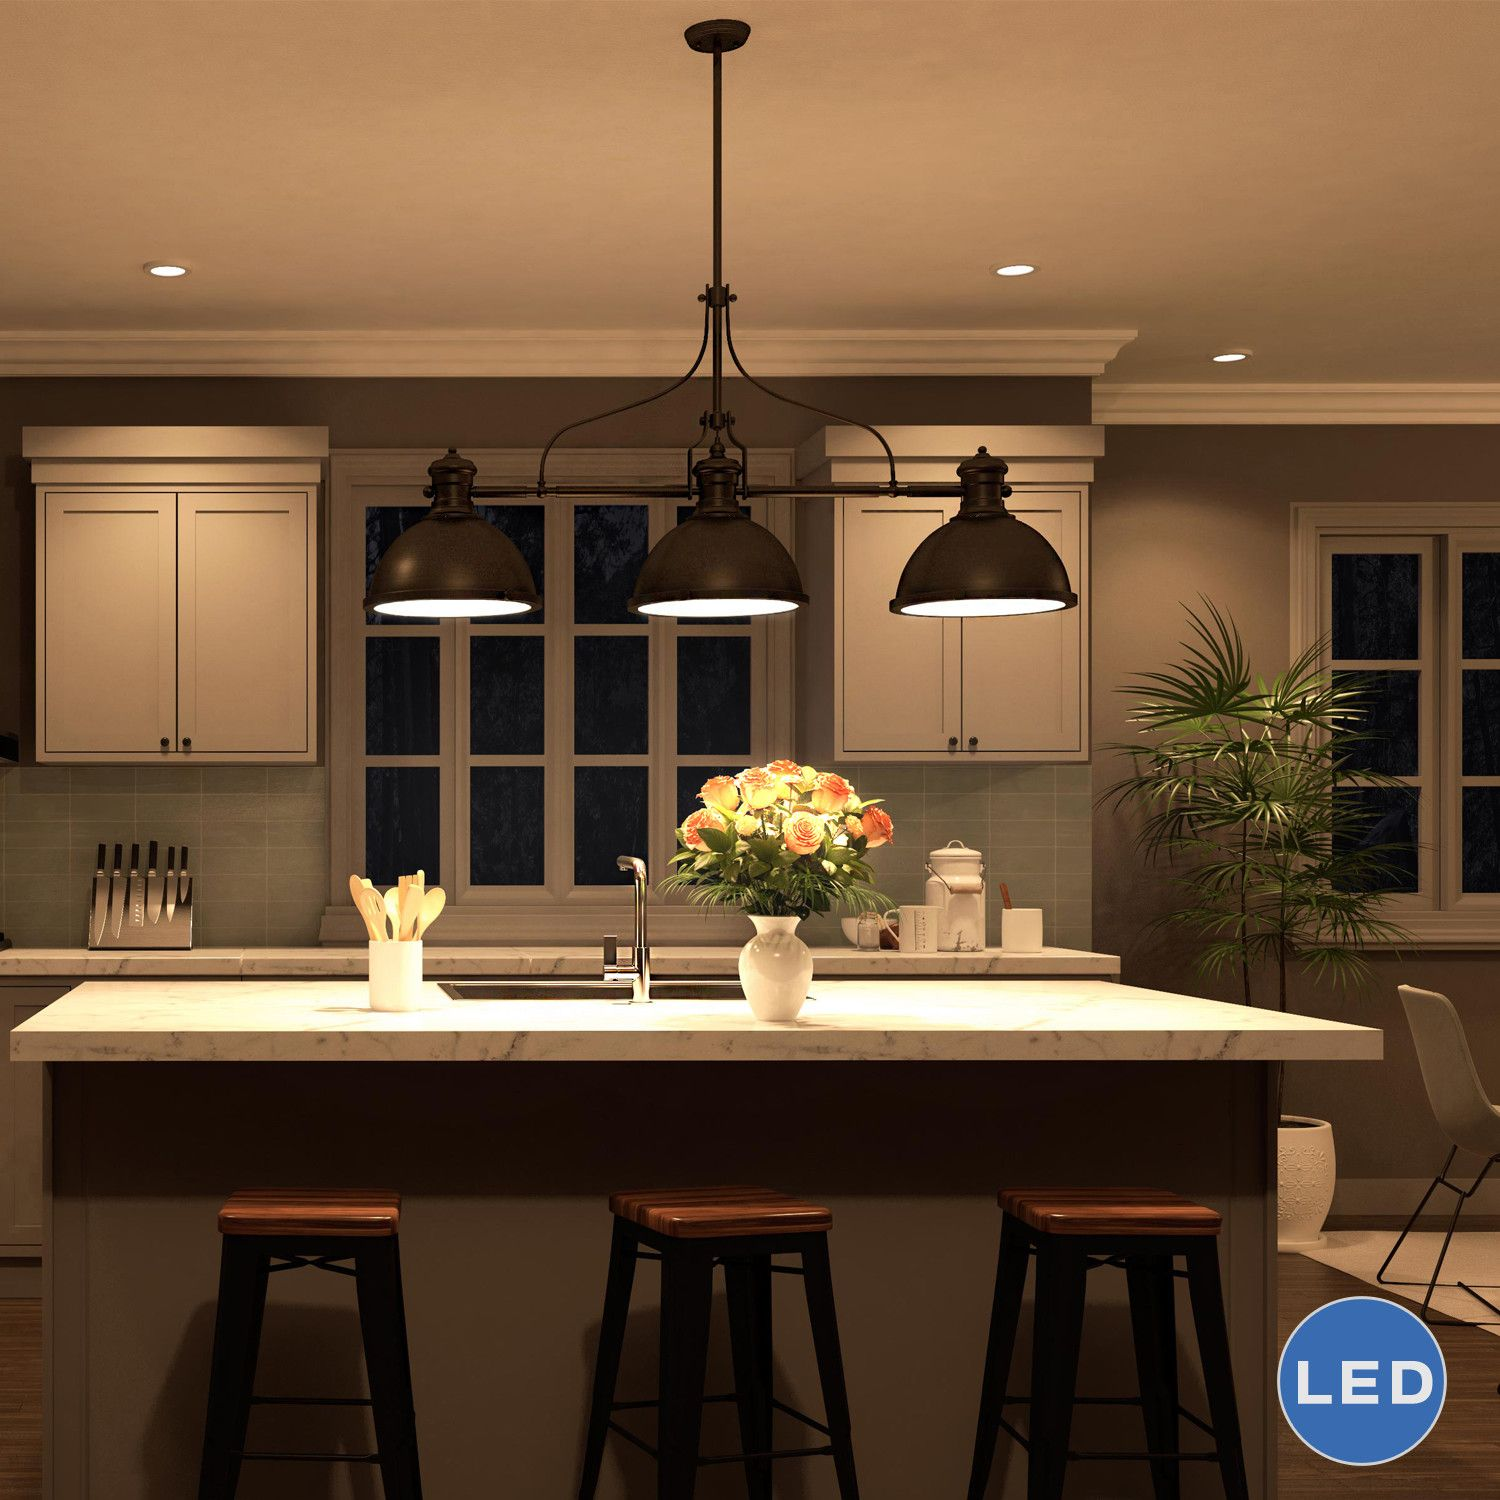 The Room May Receive Welcoming Glow Thanks To Pendant Lighting That Gives Stair Landing Meanwhile Other Items Are Located In One Strategic Spot